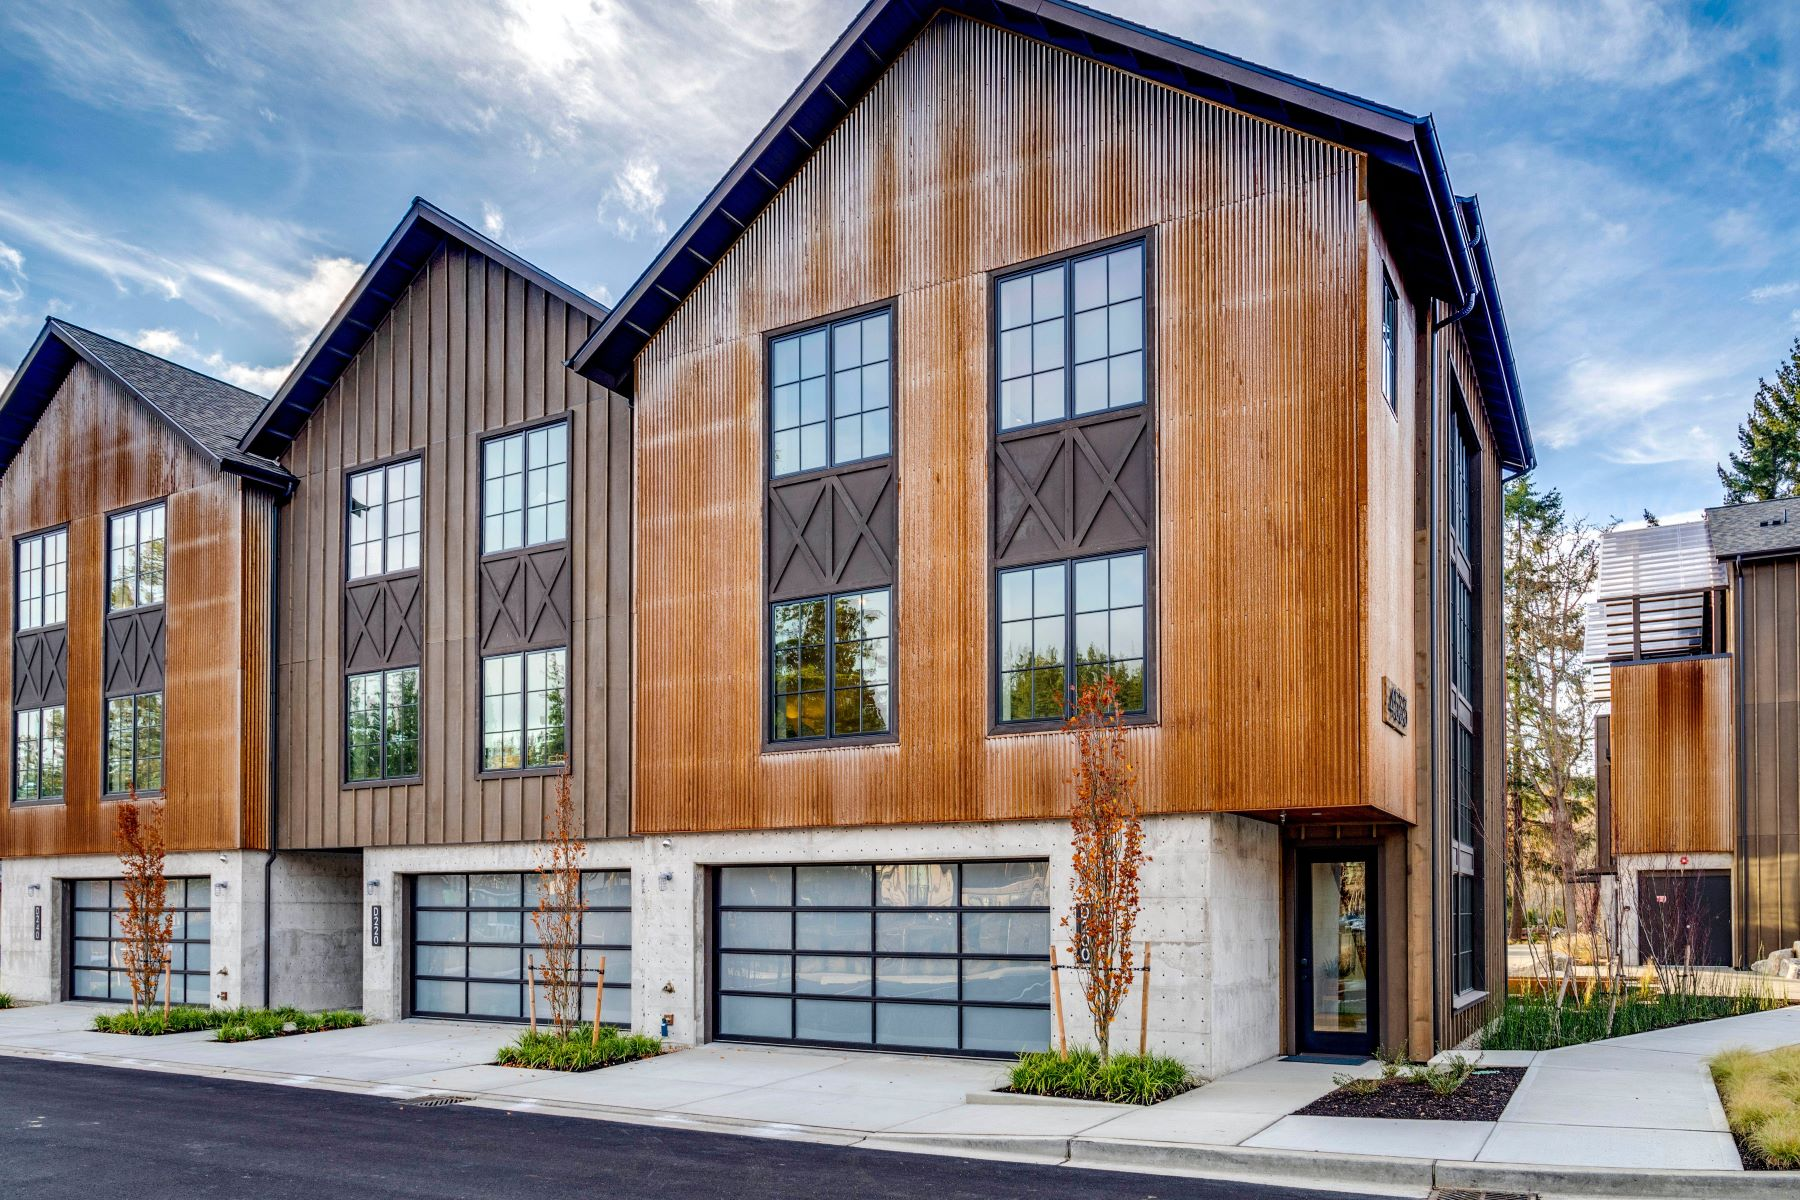 Condominiums for Sale at 4533 Flying Goat Ave Unit D220, Bainbridge Island, WA, 98110 4533 Flying Goat Ave Unit #D220, Bainbridge Island, Washington 98110 United States